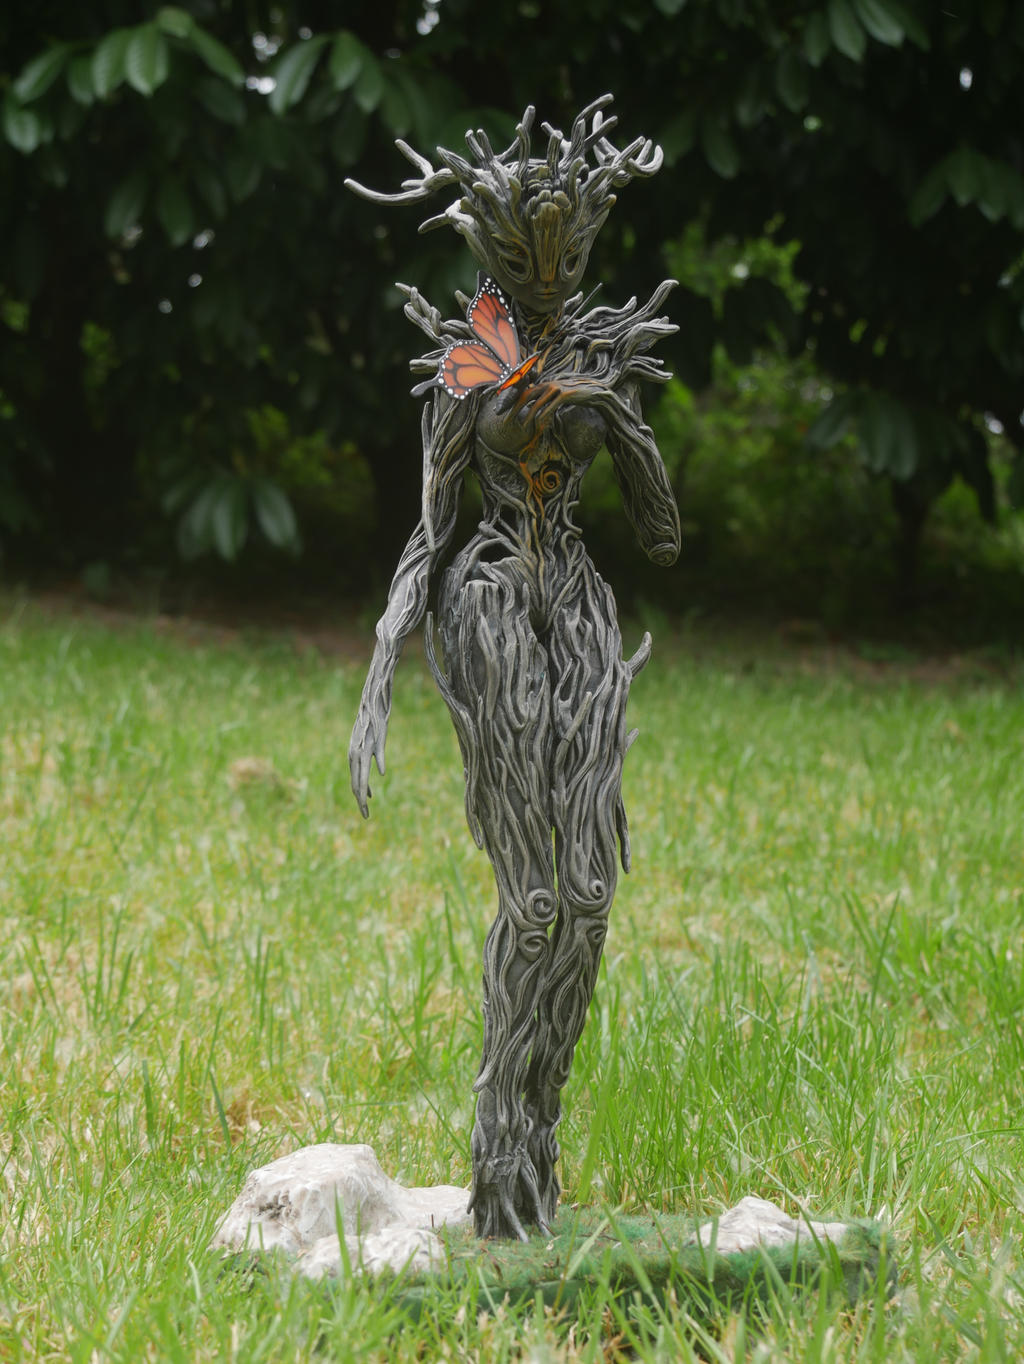 The Spriggan and the Butterfly